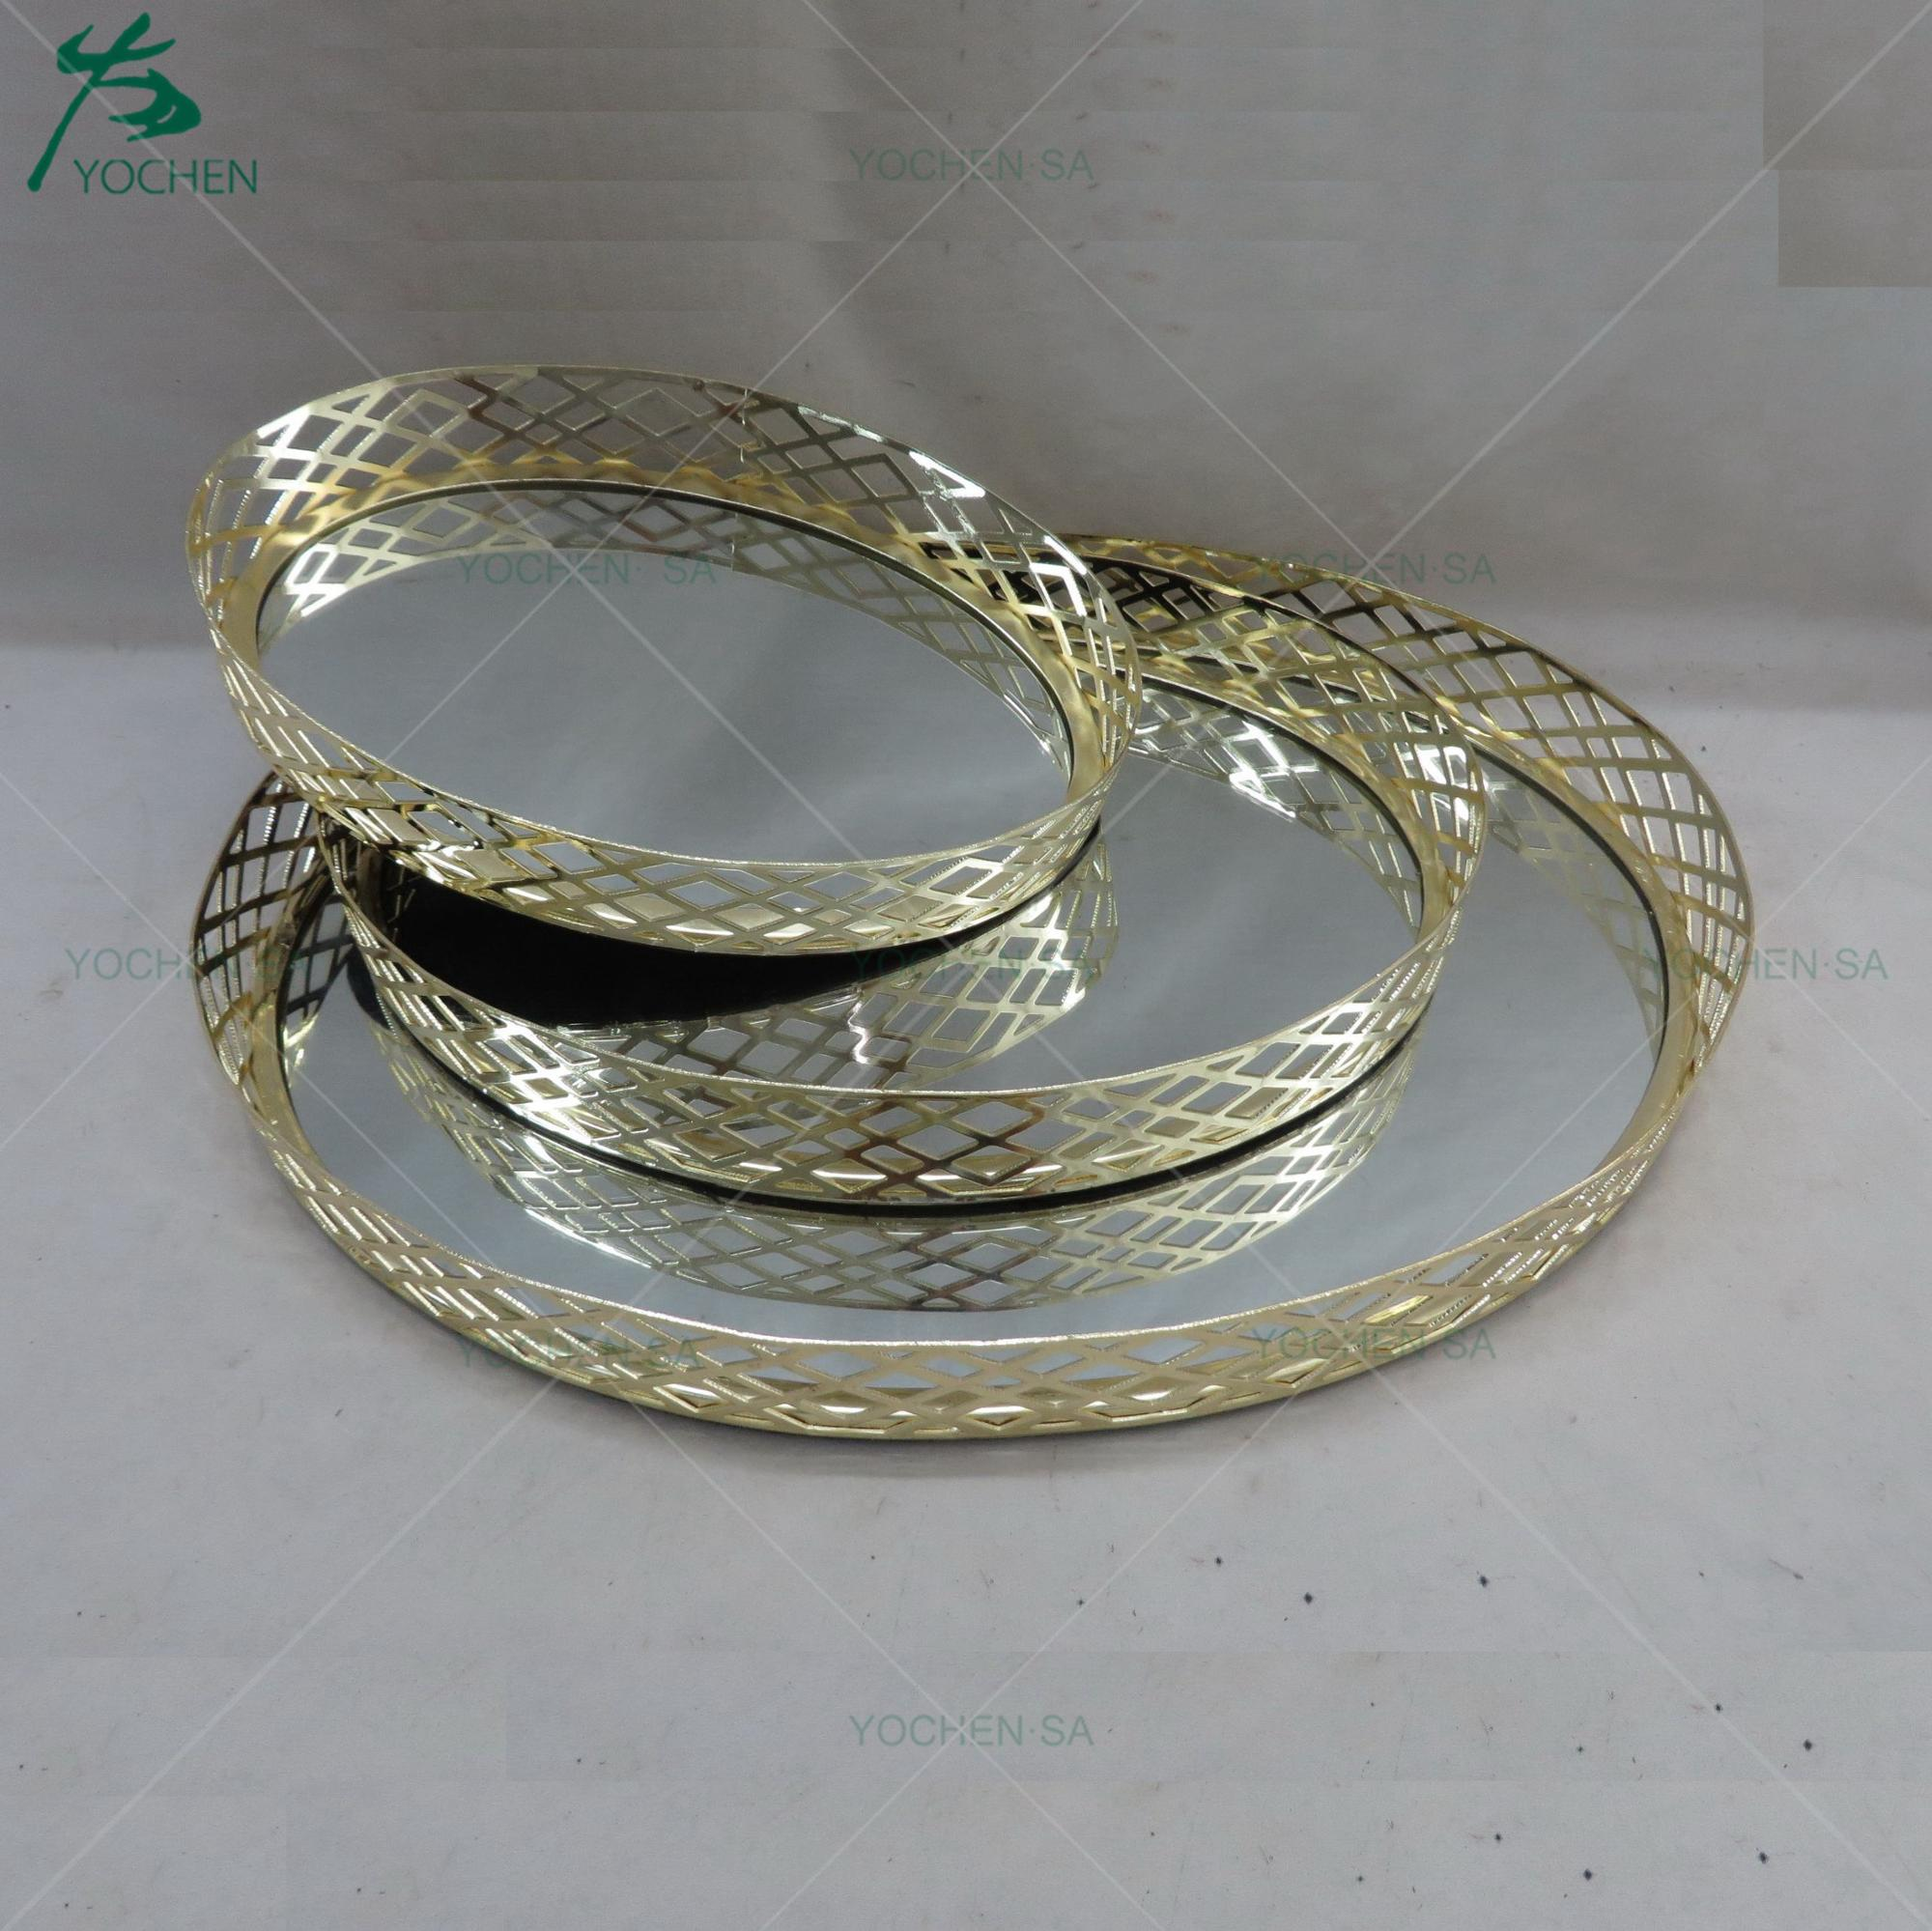 Round Decorative Metal Mirrored Serving Tray Gold